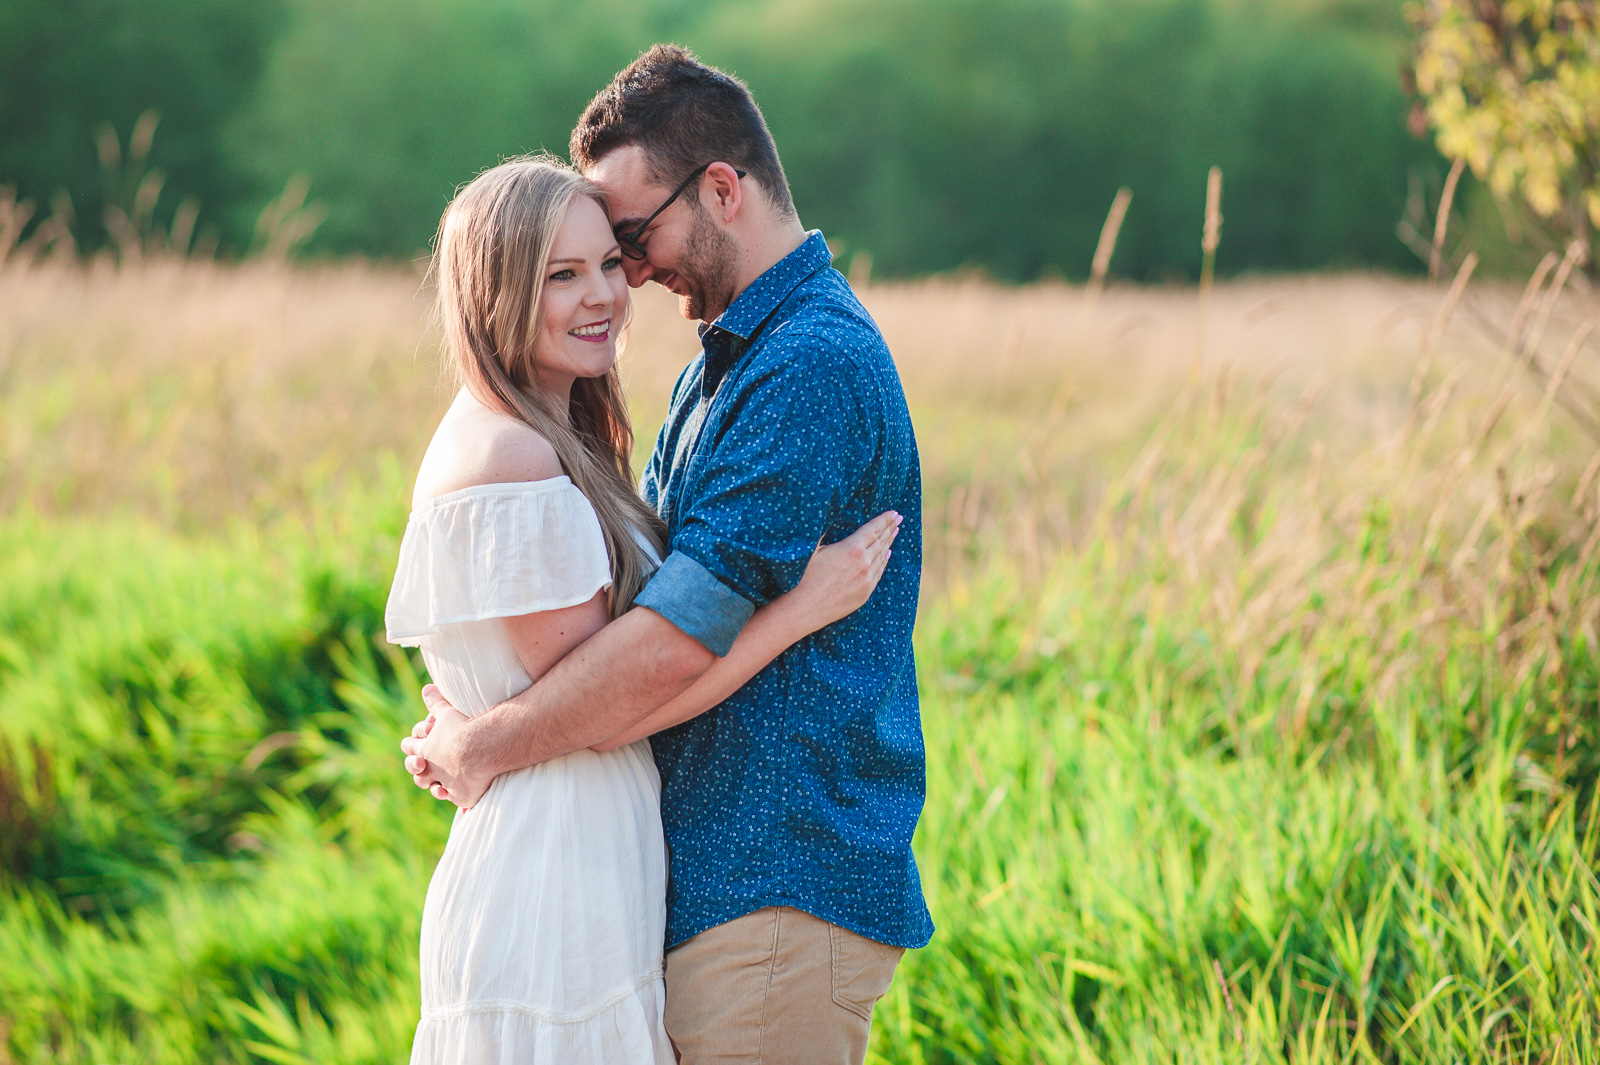 vancouver-island-wedding-photographers-campbell-valley-park-engagement-session-02.jpg